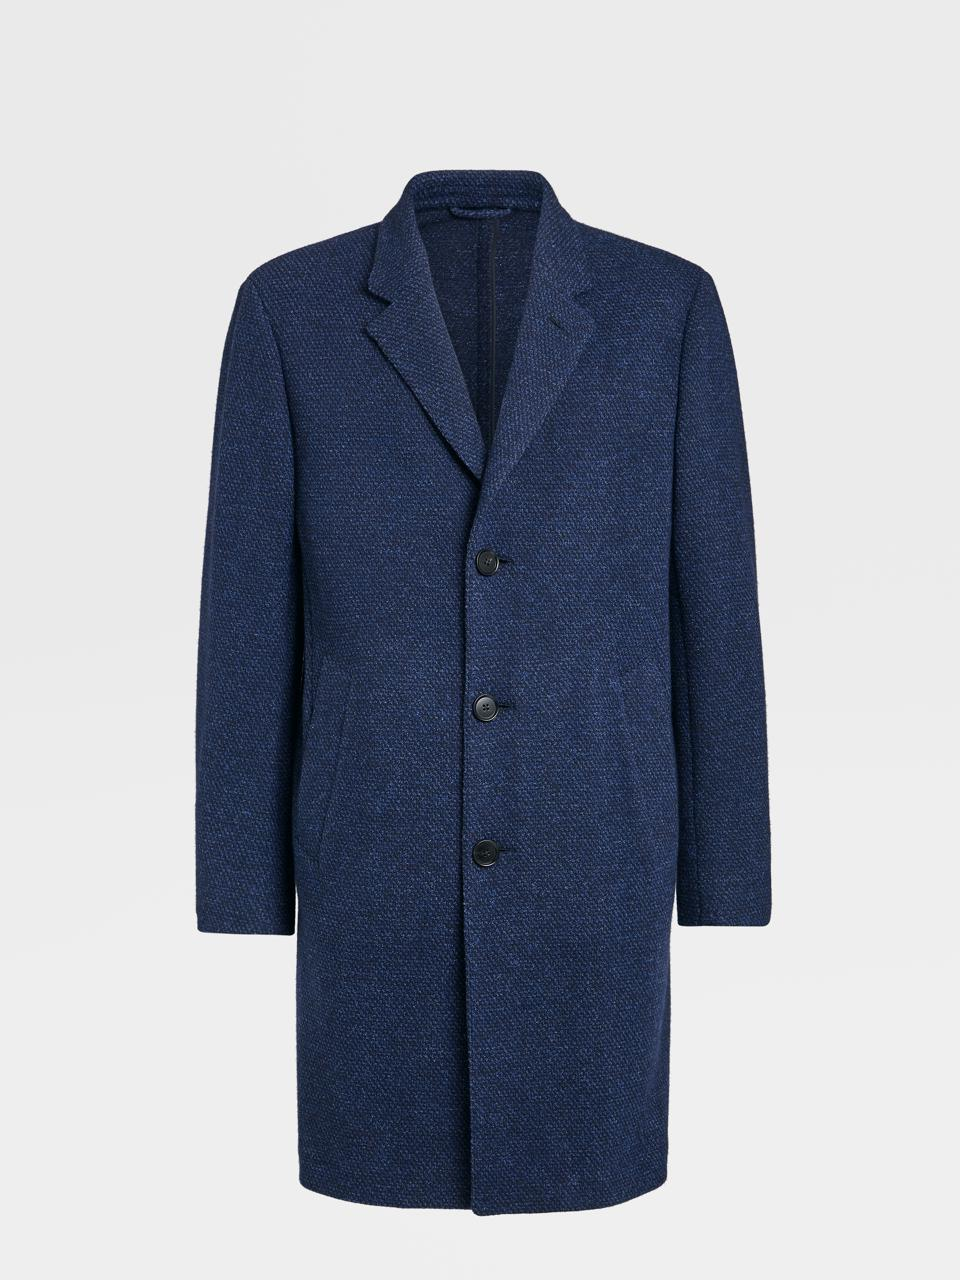 Cashmere and Wool Blend Overcoat by Ermenegildo Zegna